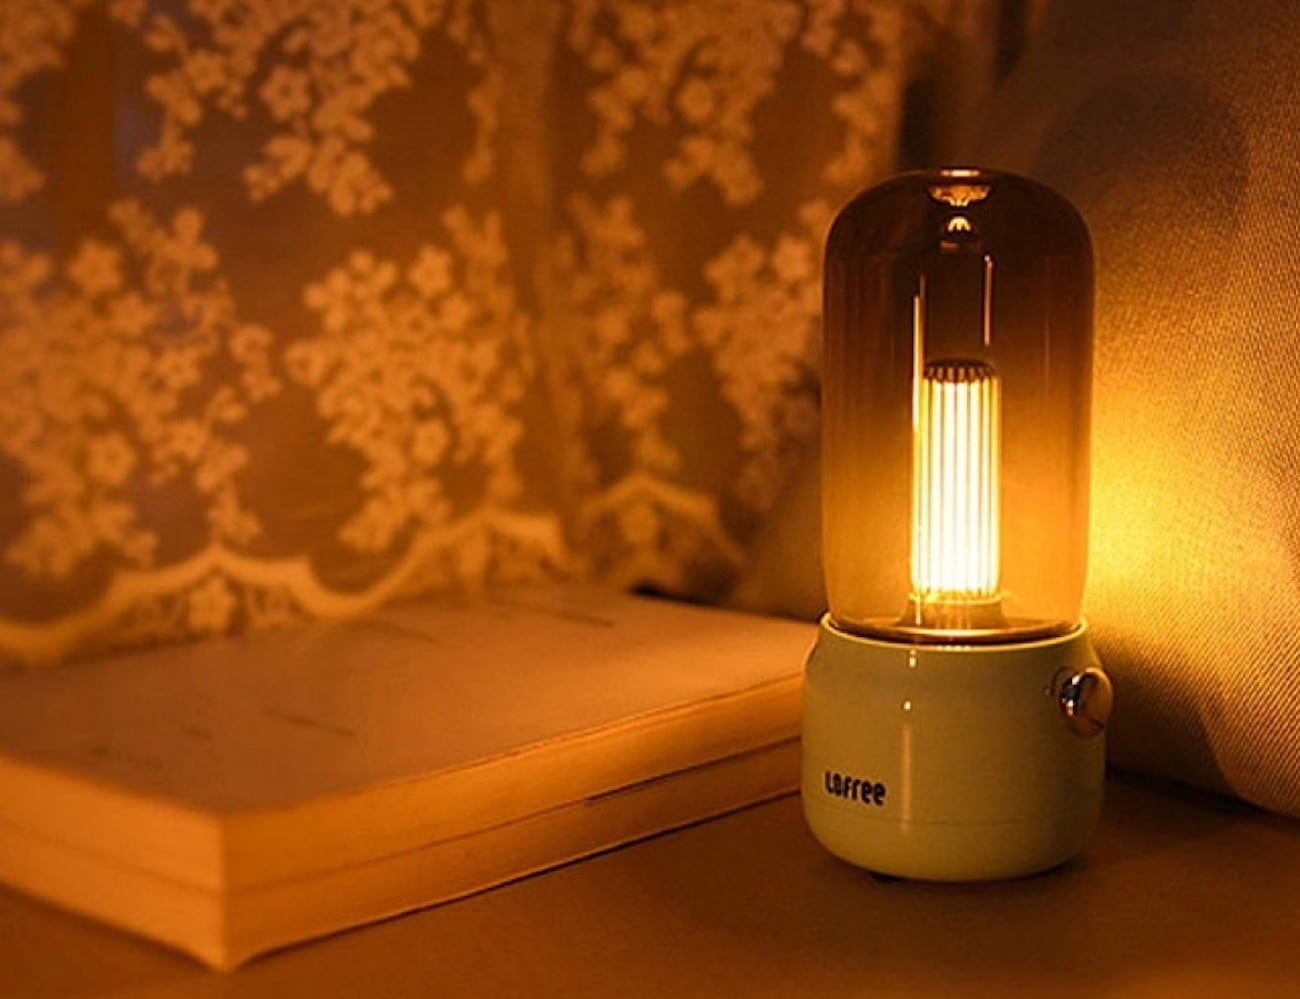 Candly Ambient Flickering Lamp imitates candlelight